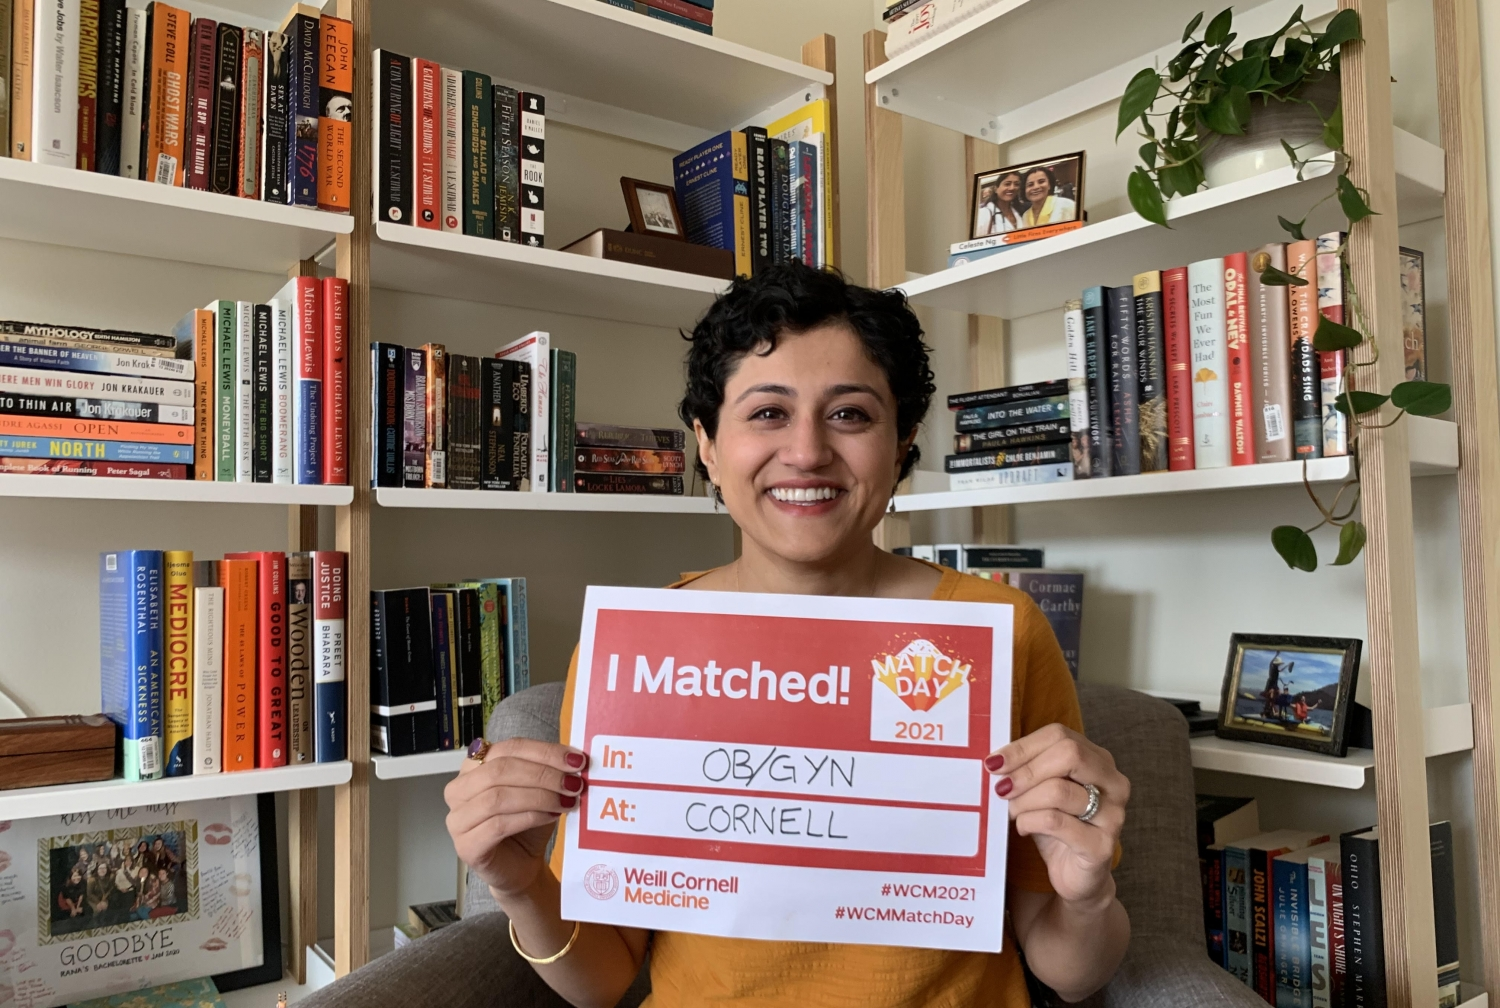 a woman smiling for a photo, holding a sign showing where she matched for Match Day 2021